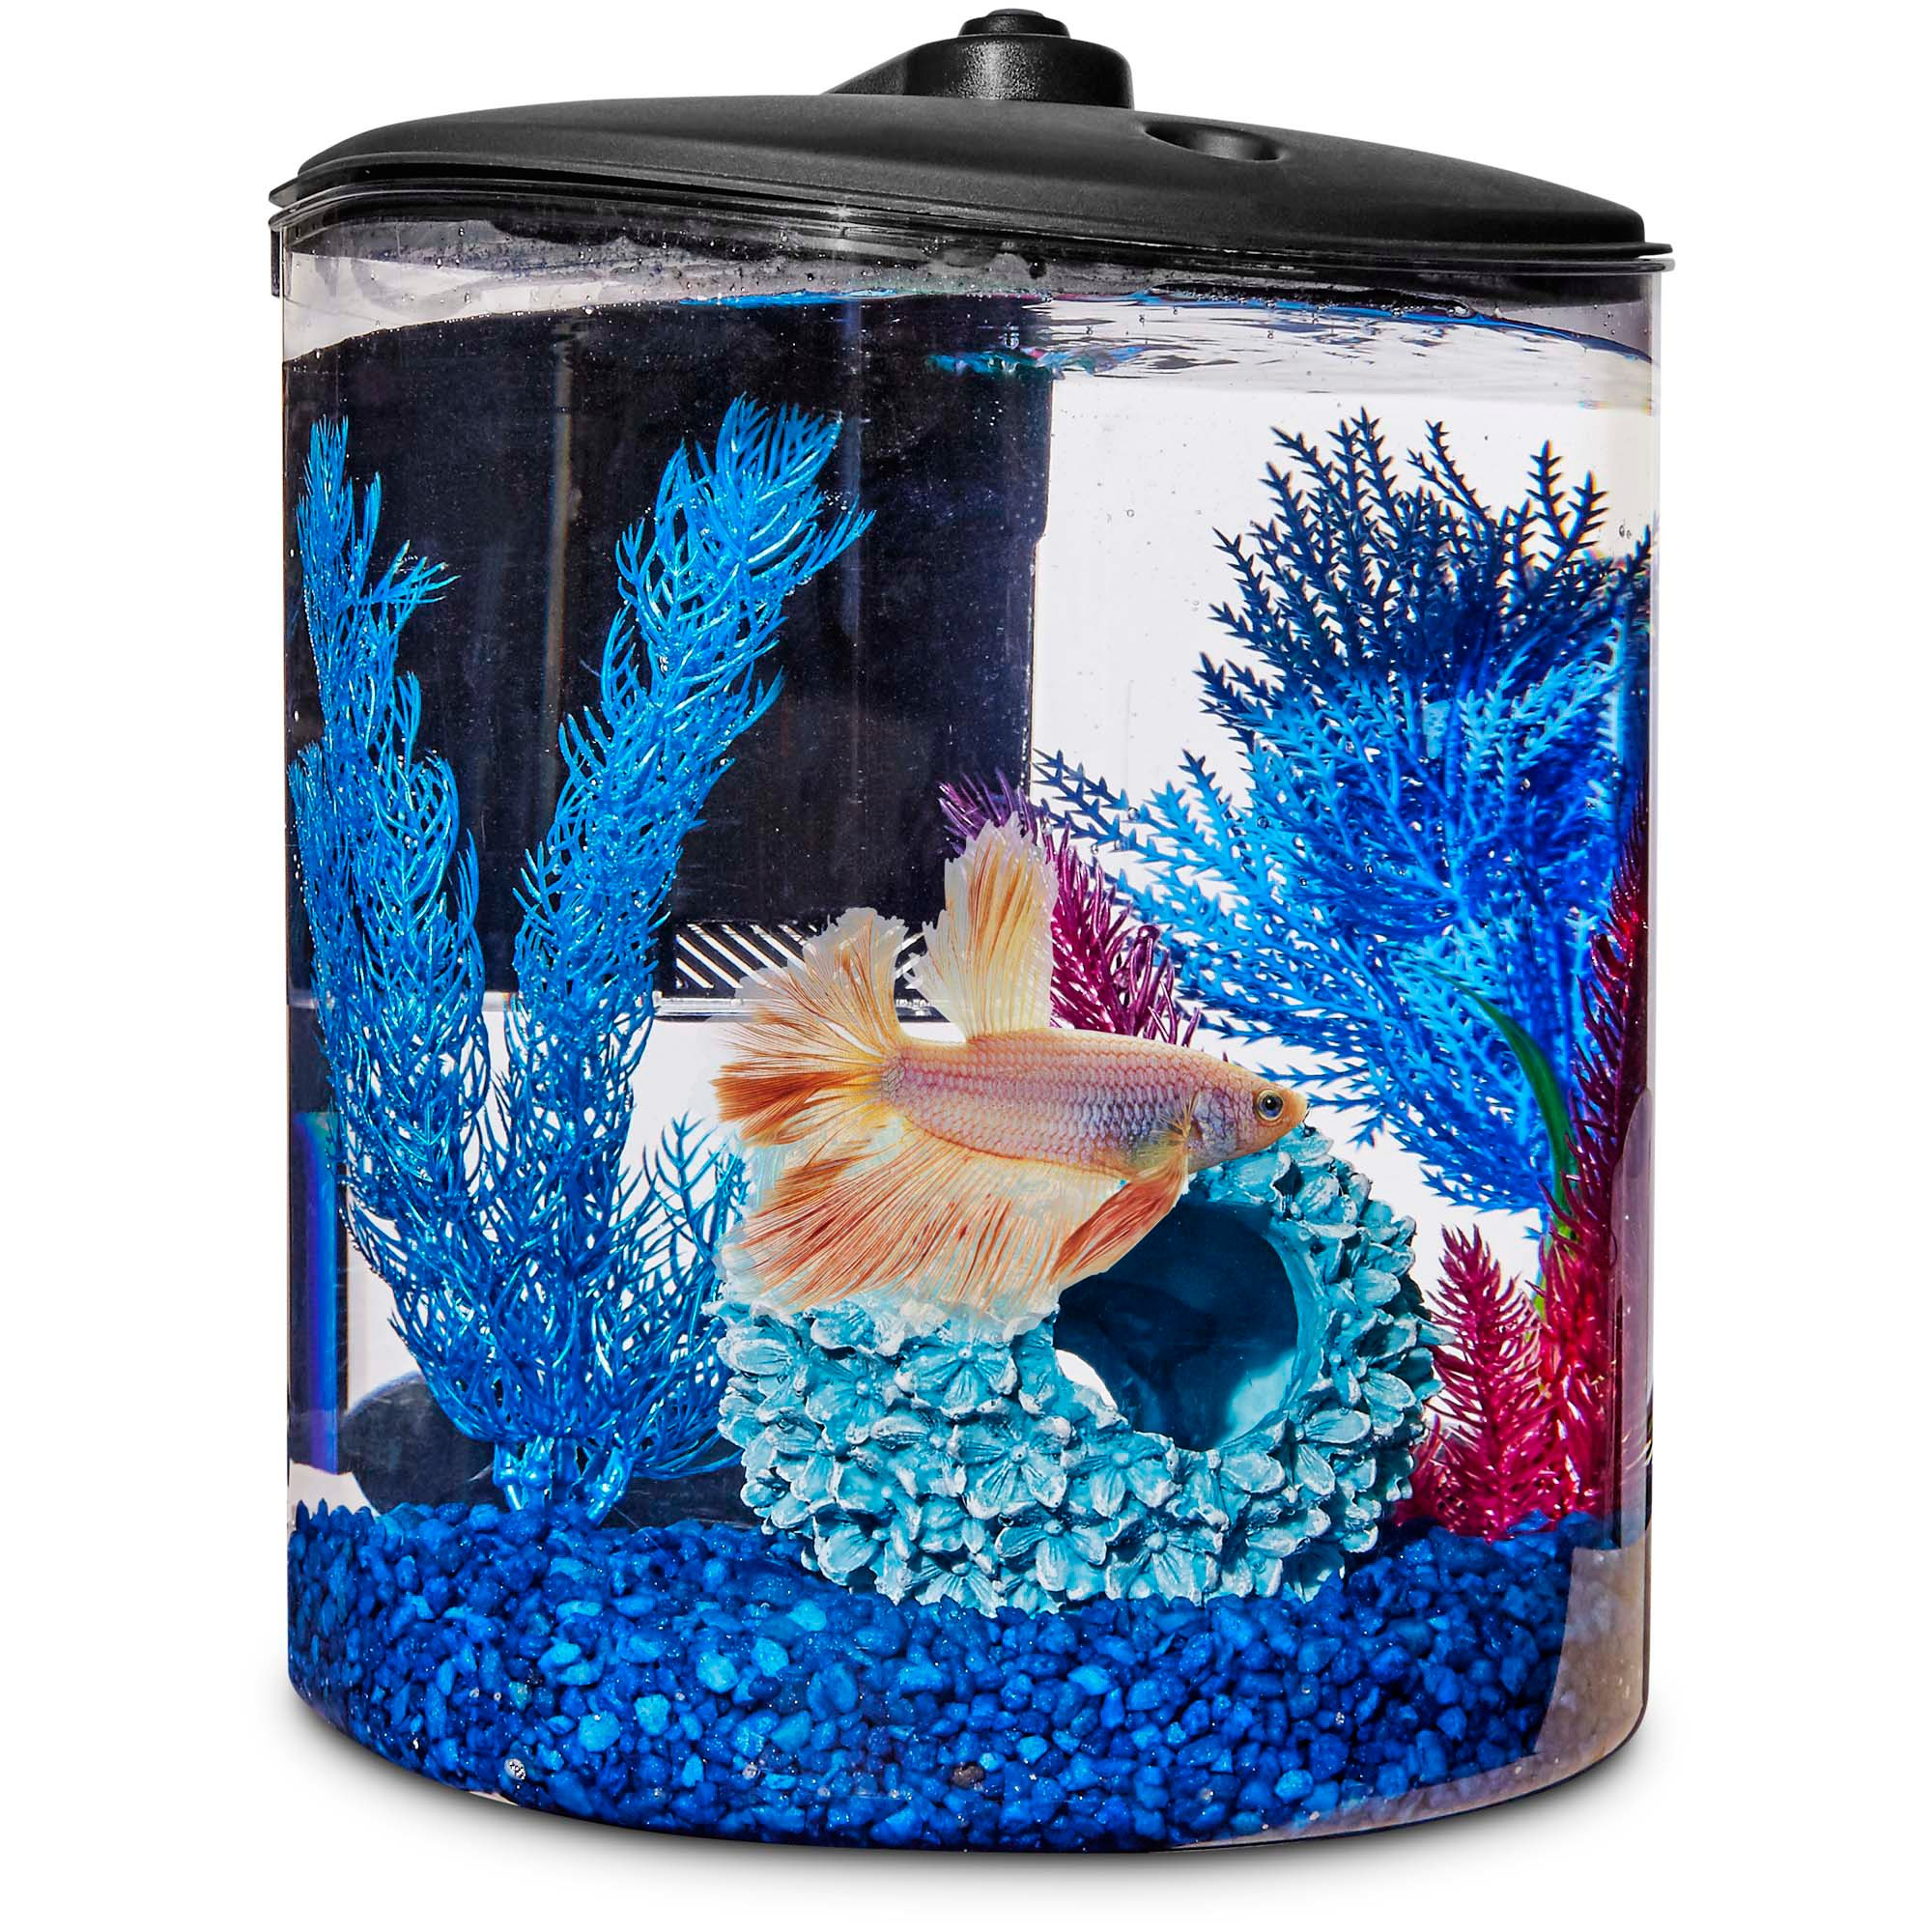 Imagitarium cylindrical betta fish desktop tank kit petco for Betta fish tanks petco